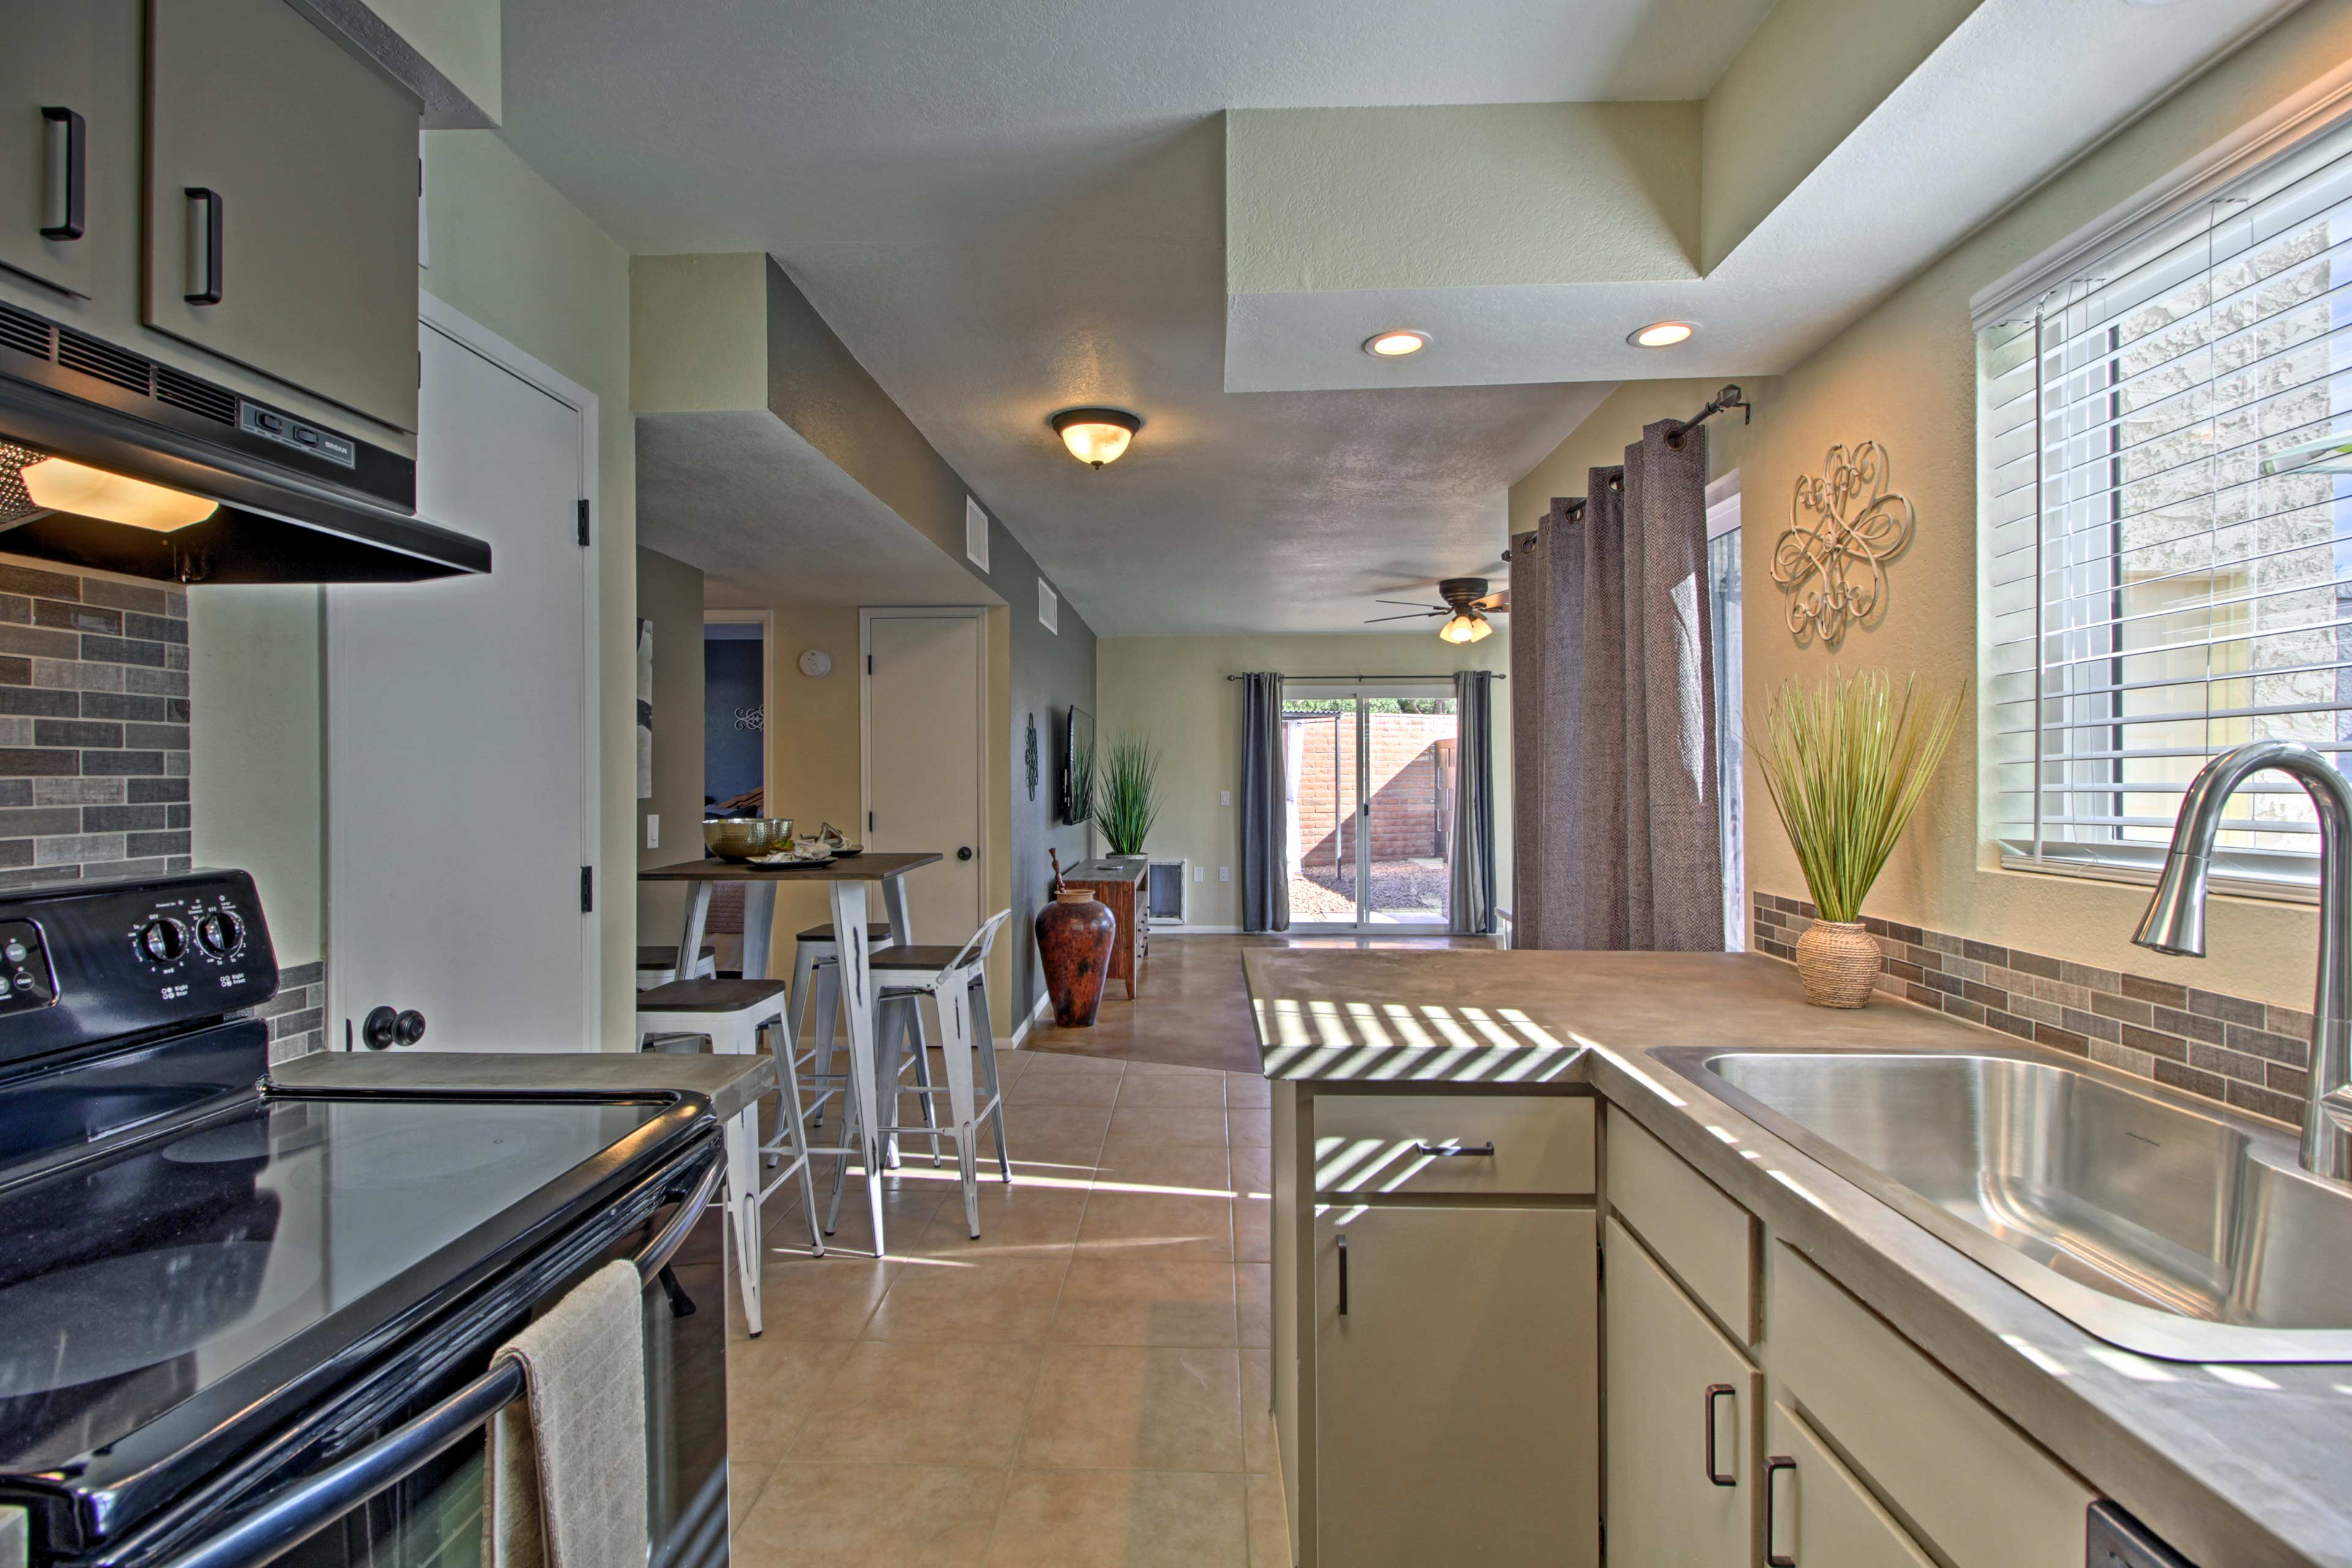 The kitchen is fully equipped to ensure evening meals can be done with ease.